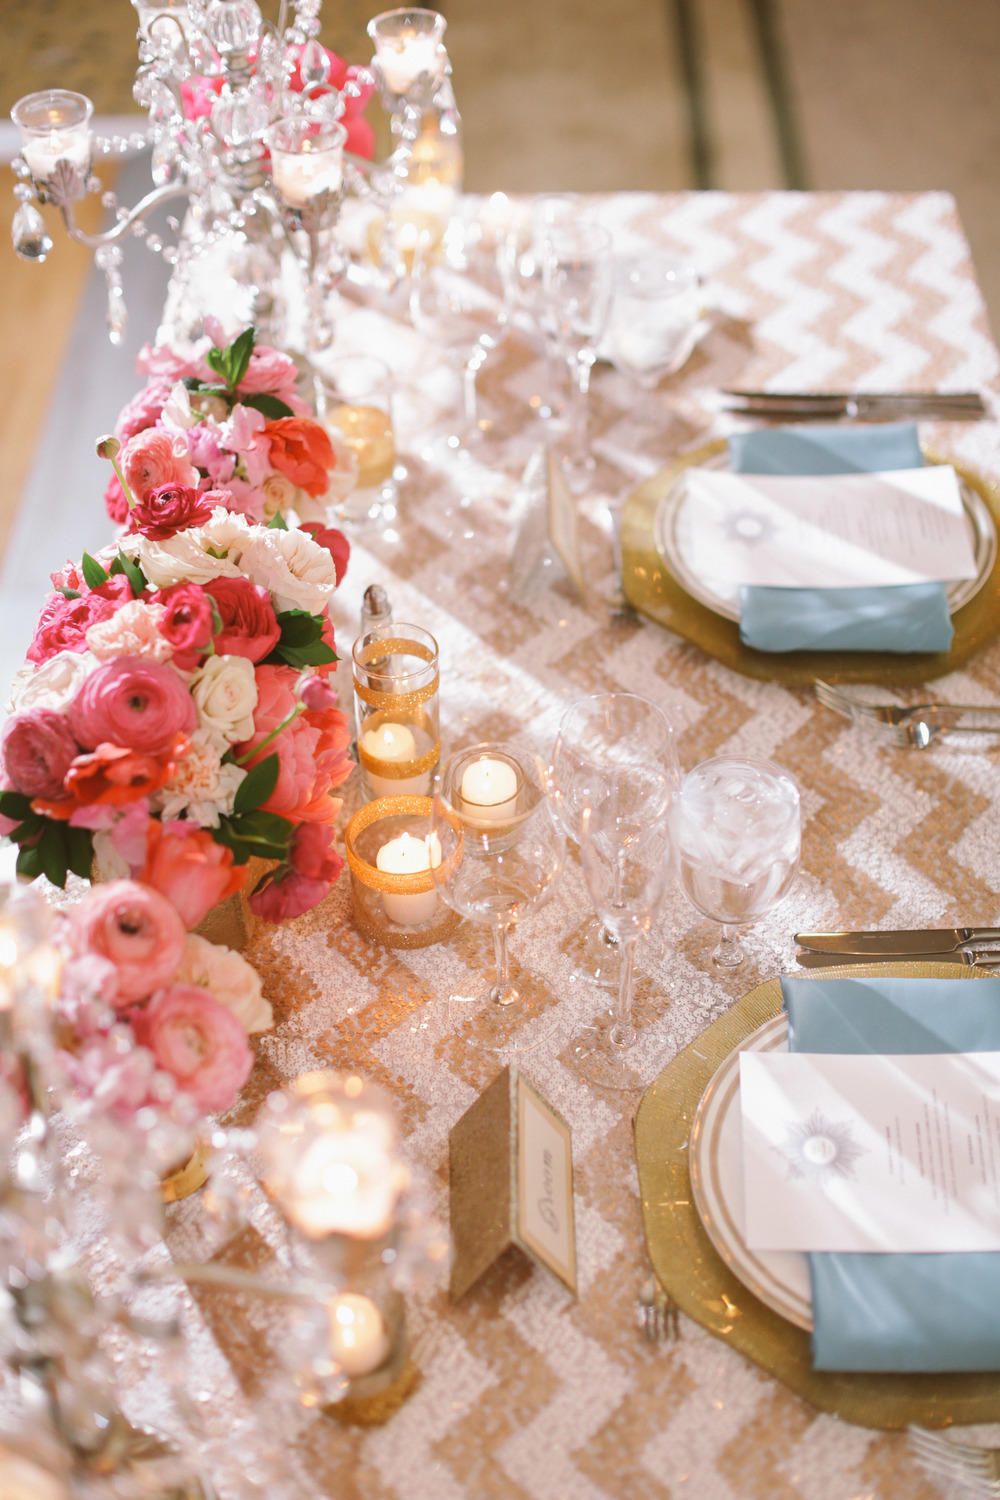 014 reception head table 2.jpg